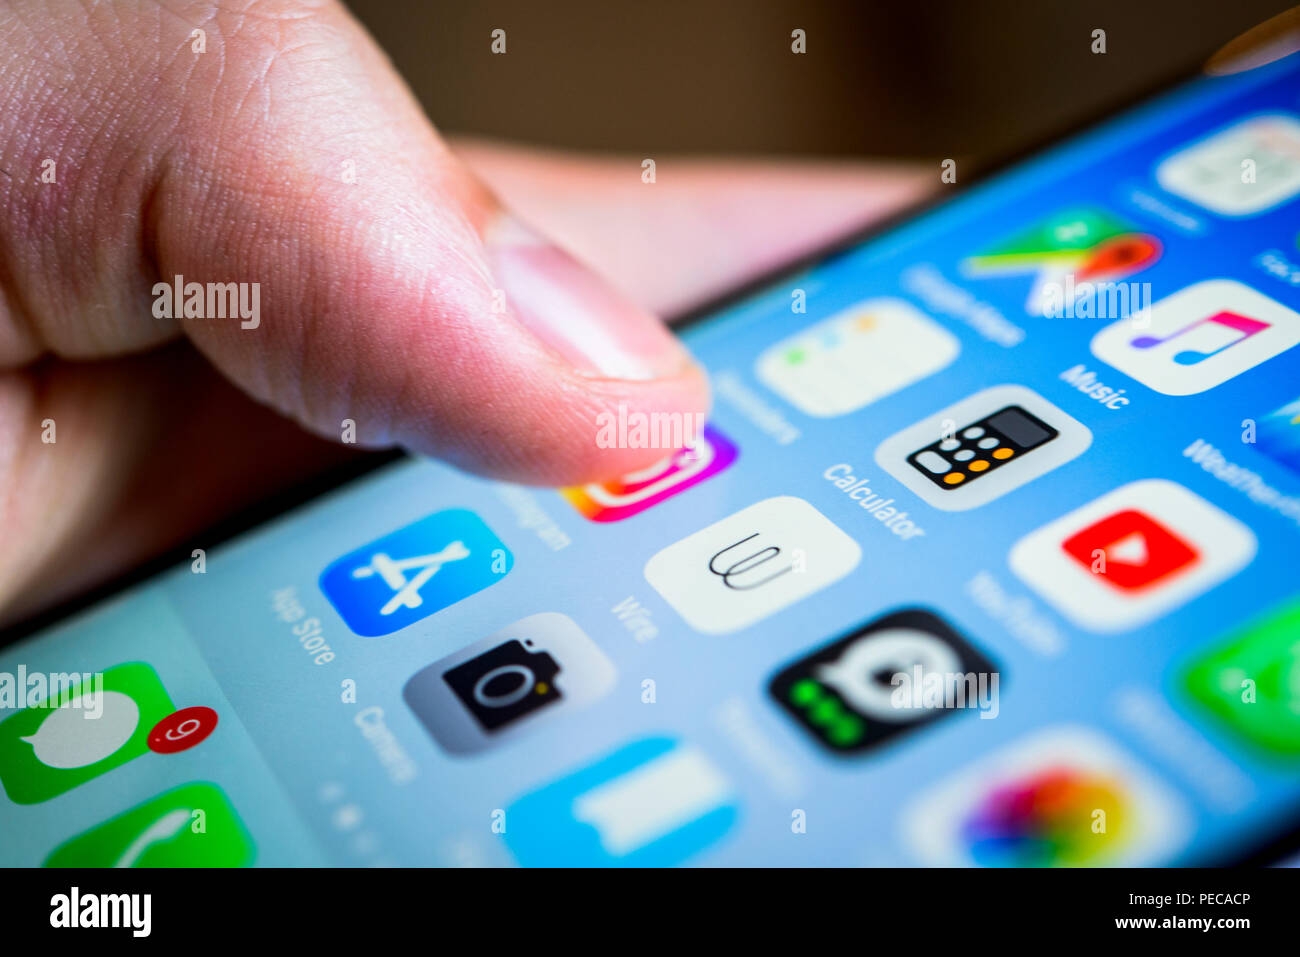 Finger touching display, touchscreen of an iPhone, smartphone, Homescreen, many app icons on the display, Apps, iOS, detail - Stock Image